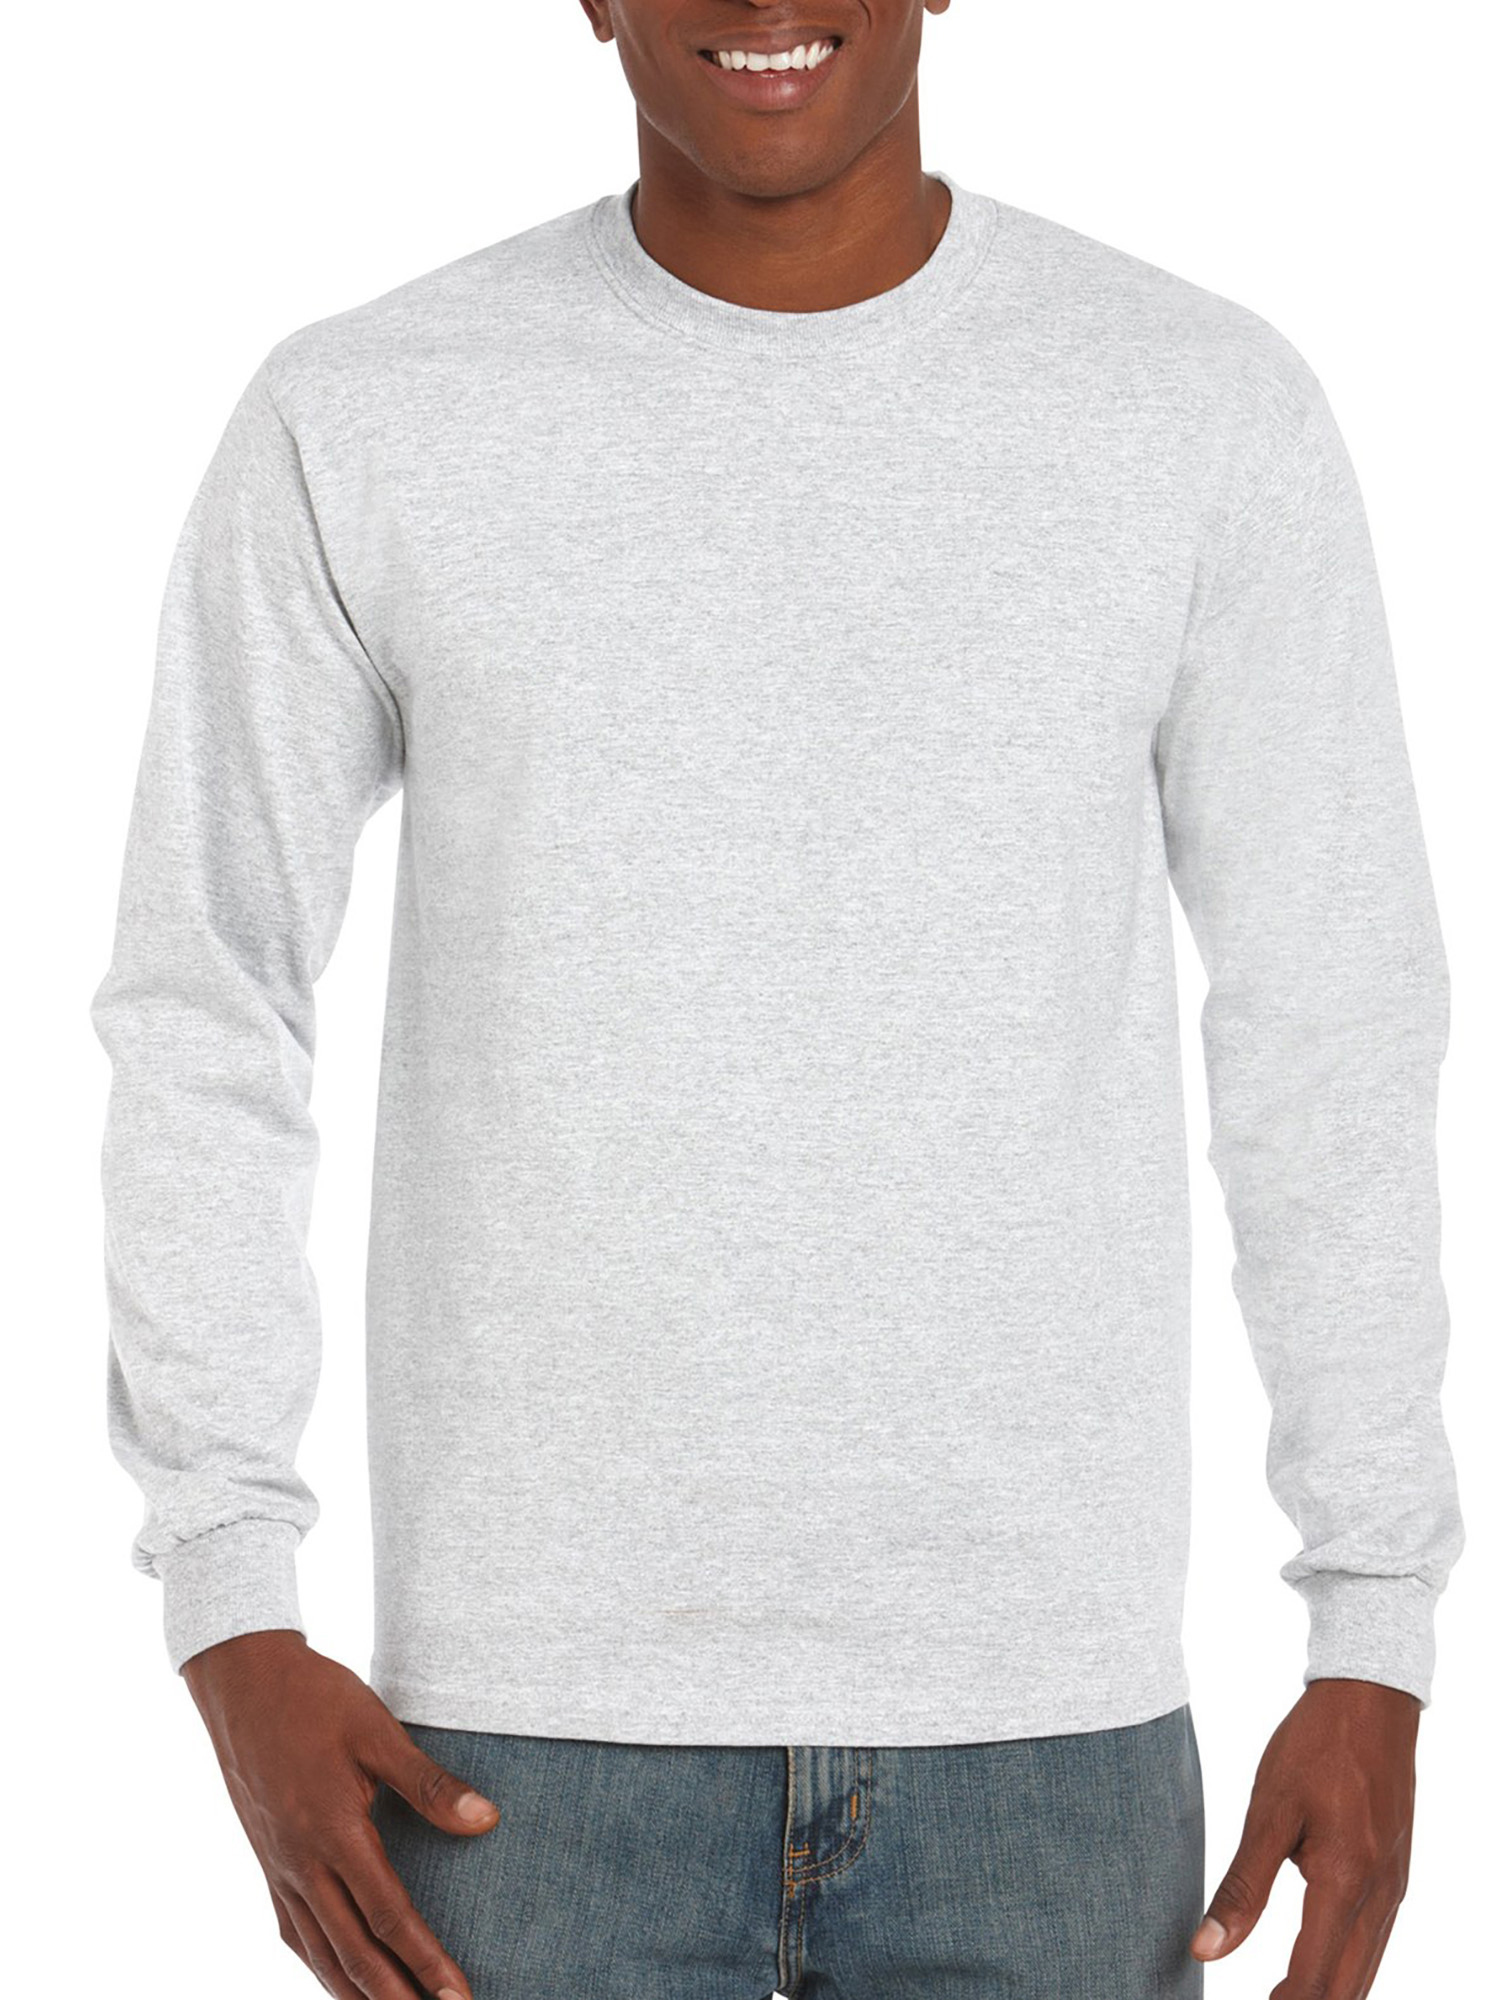 Long sleeve T-shirt gildan mens classic long sleeve t-shirt LUHIREO